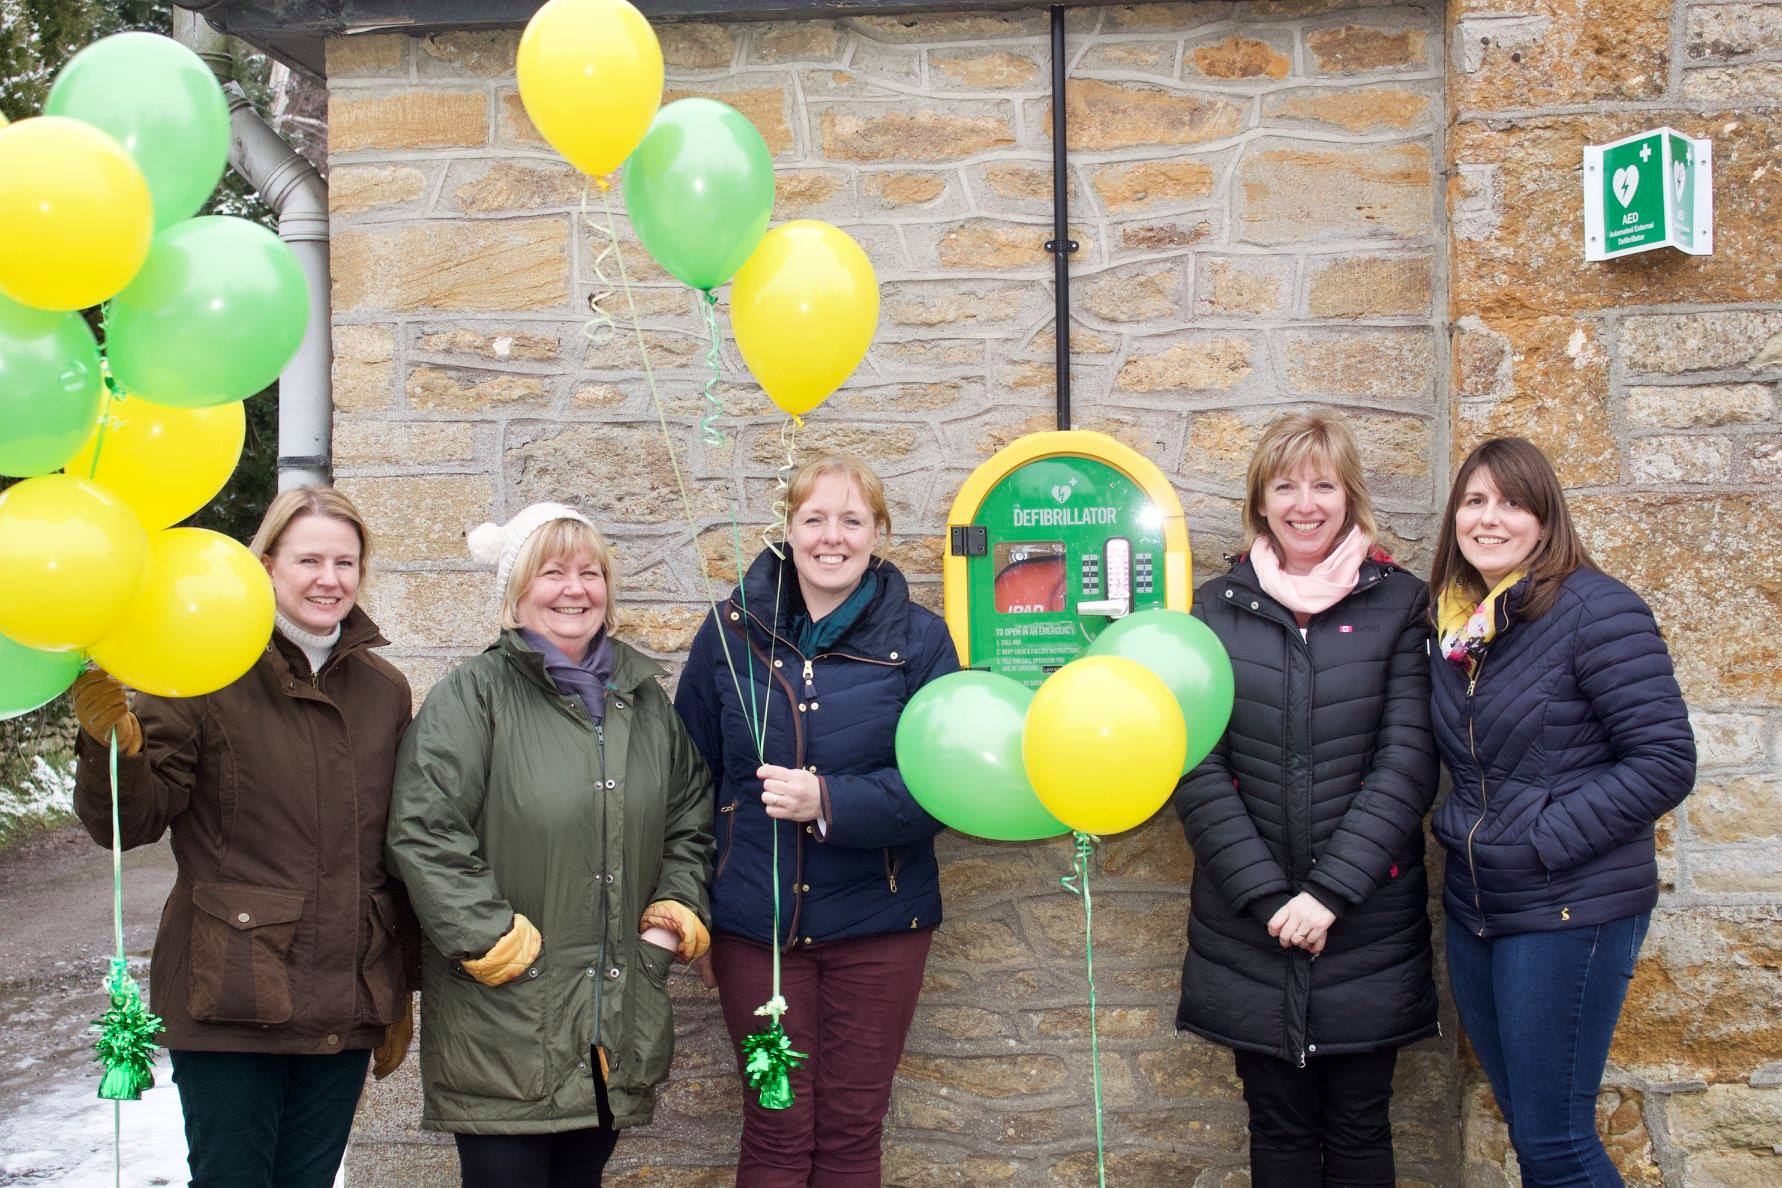 Two new Crewkerne defibrillators inspired by dad's sudden heart attack death